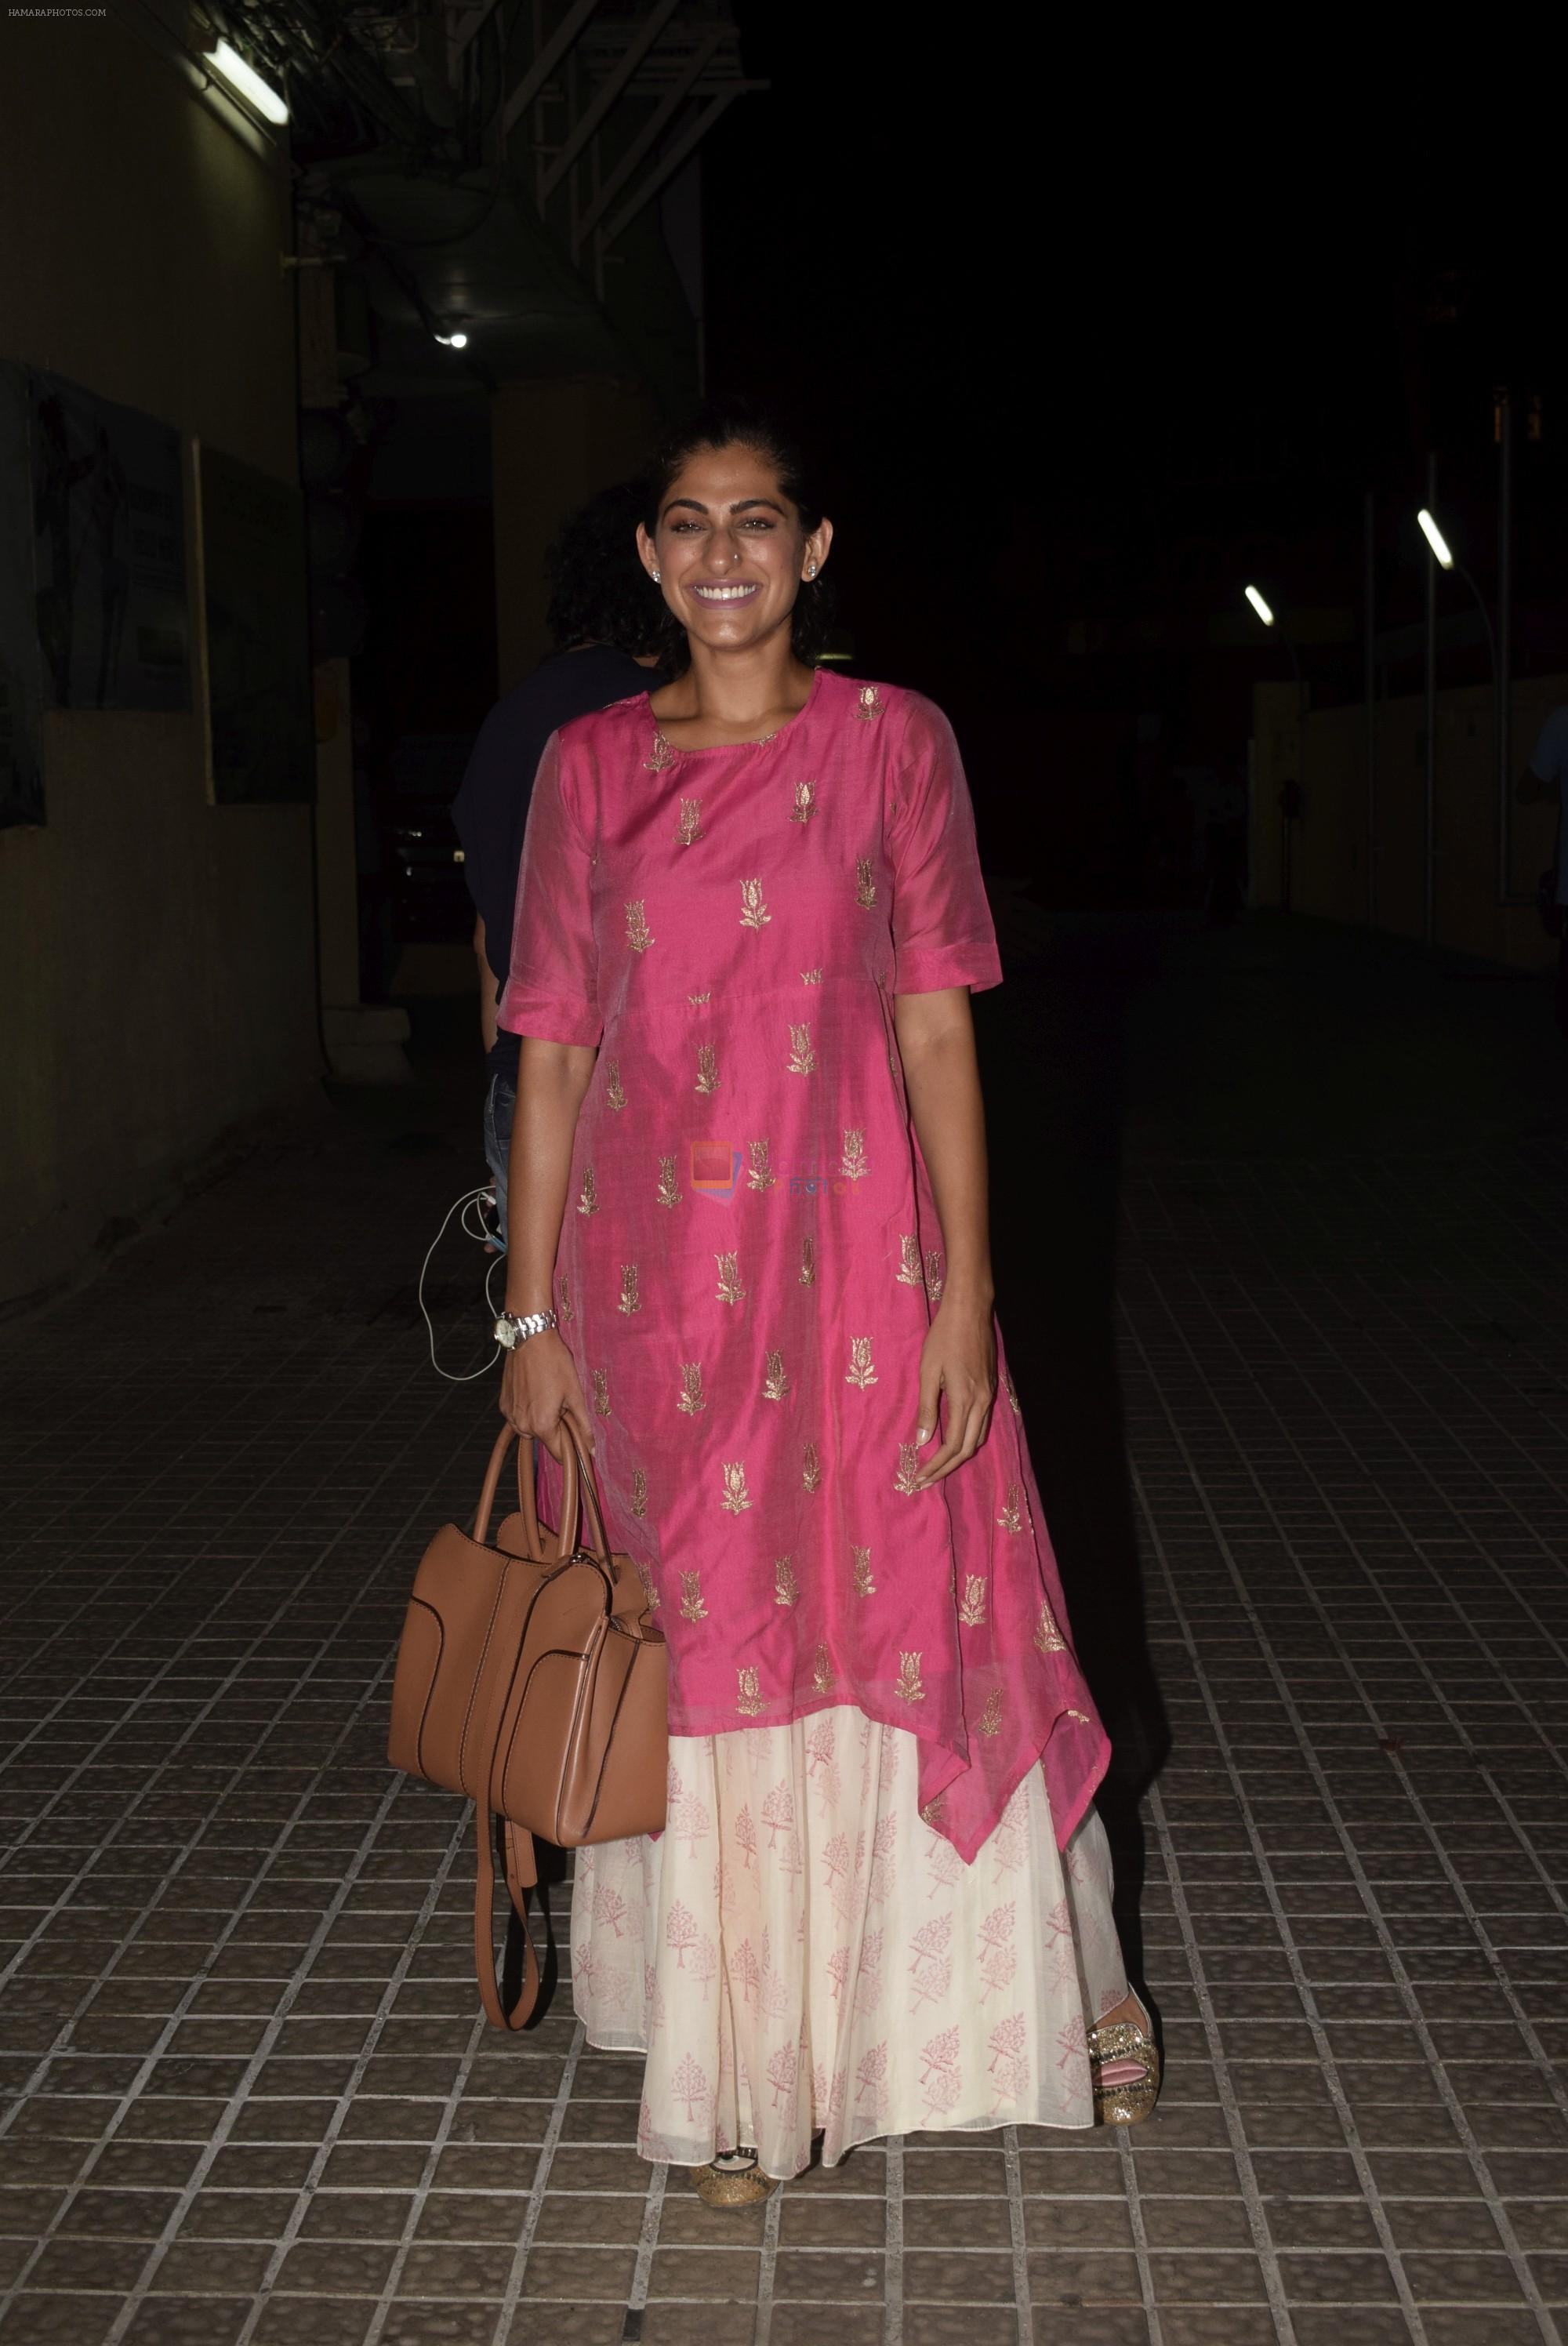 Kubbra Sait at the Screening of film Sonchiriya at pvr juhu on 27th Feb 2019